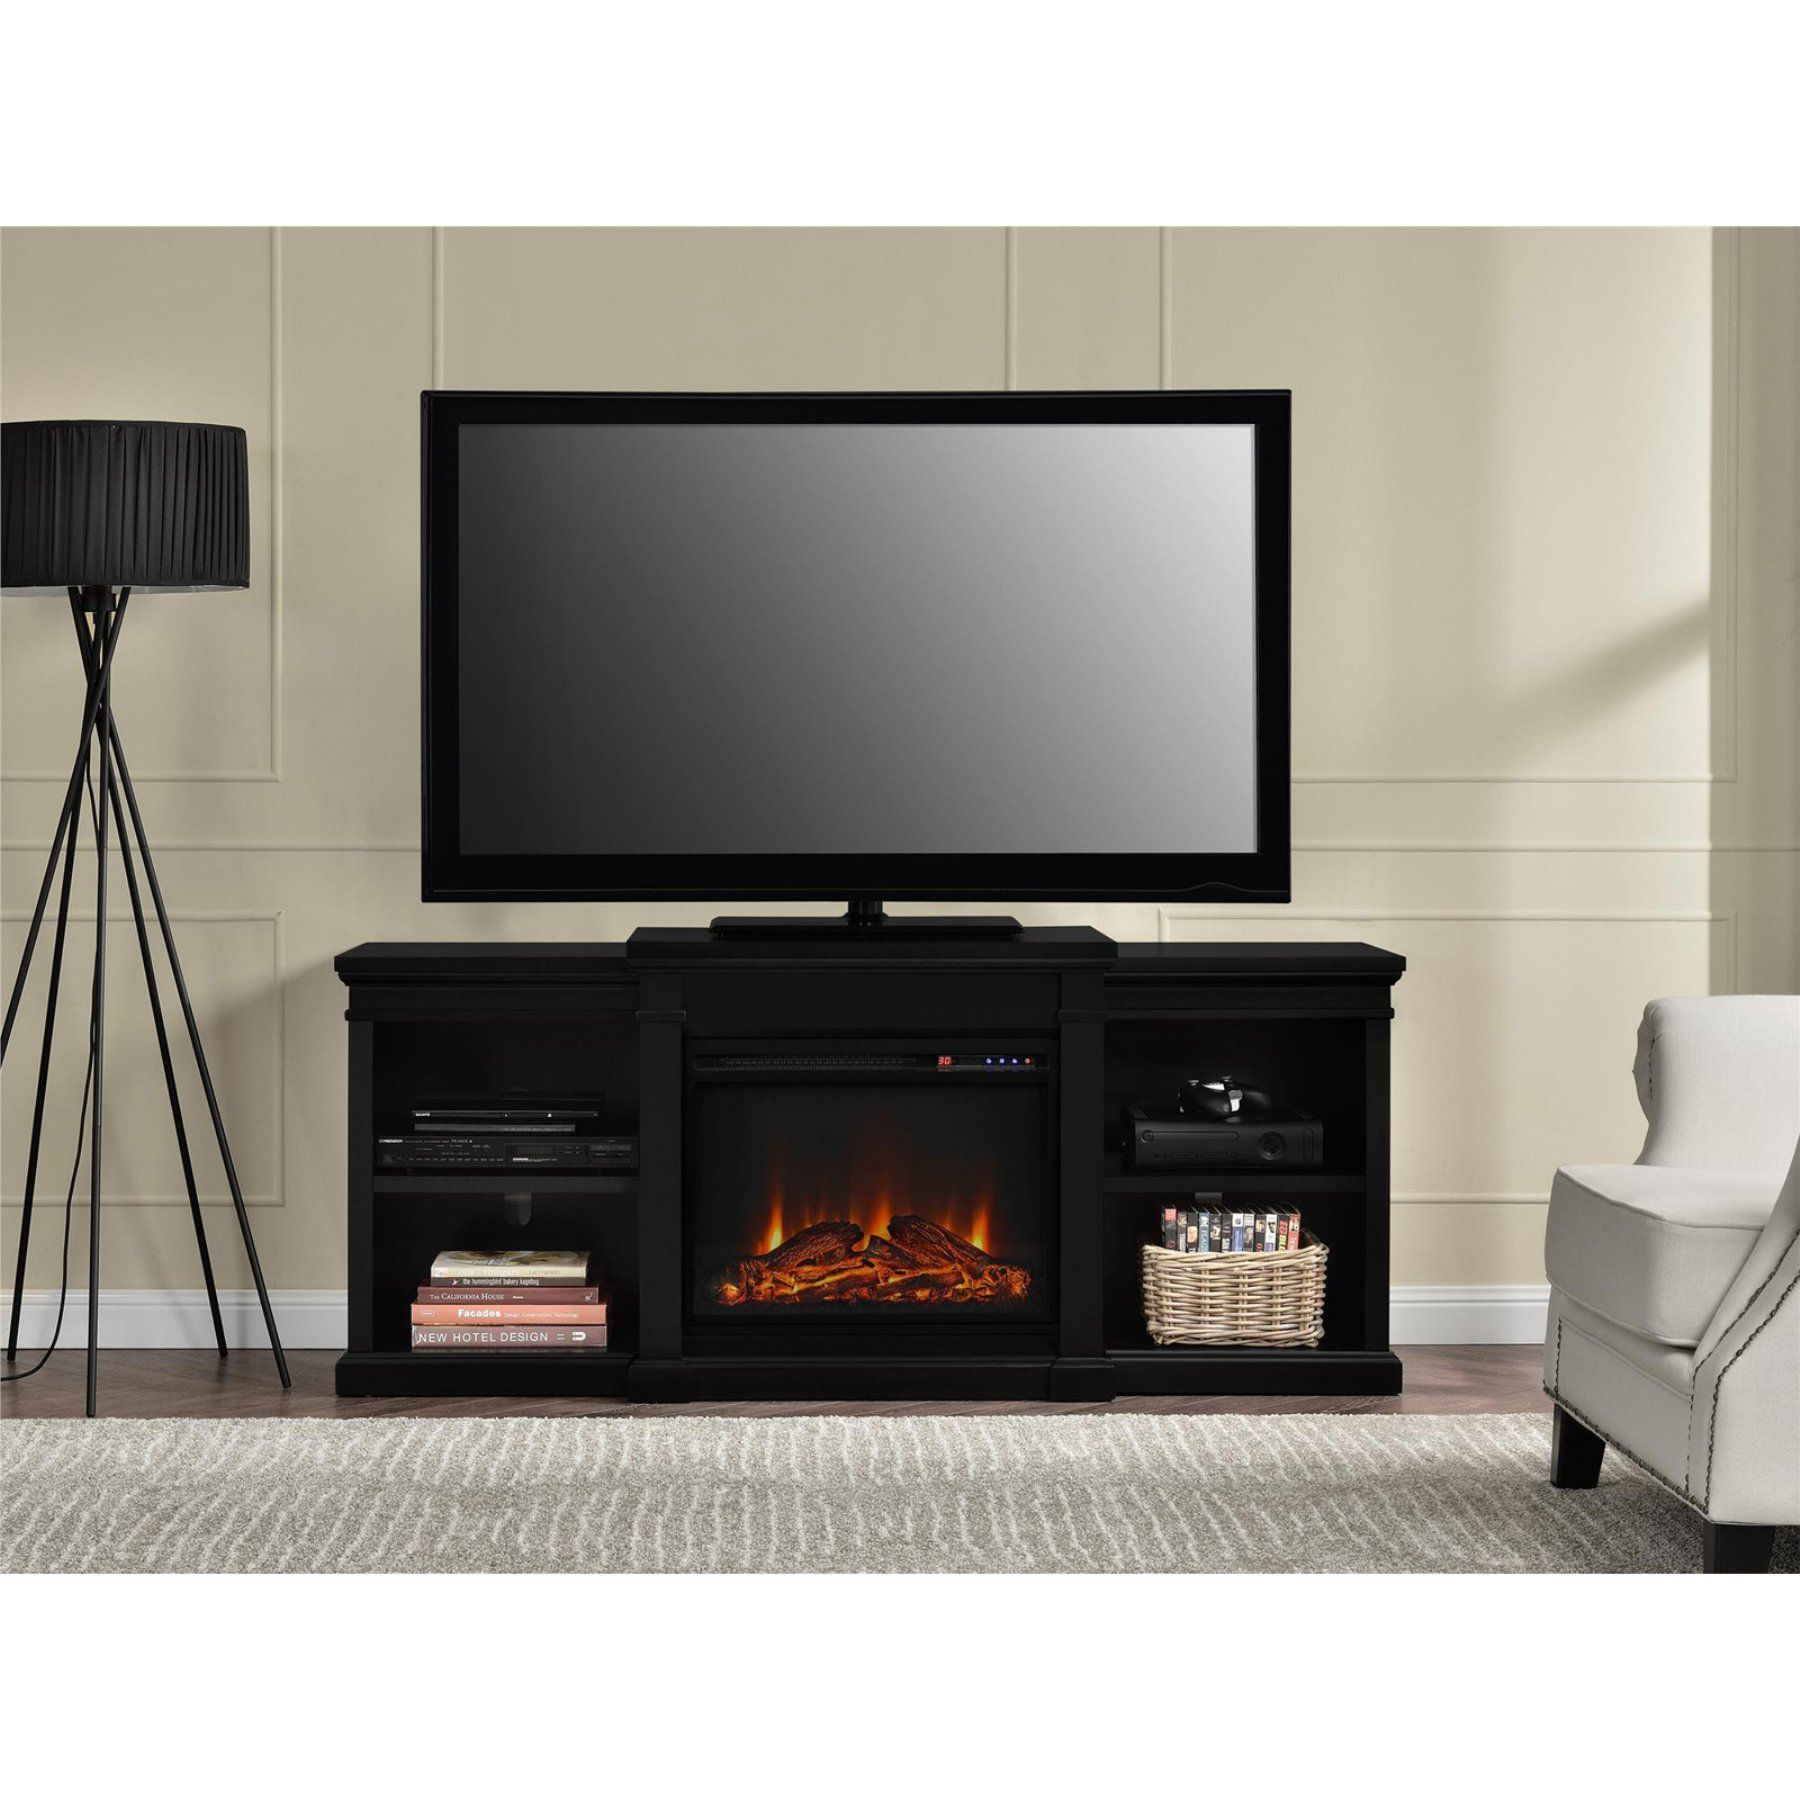 Ameriwood home manchester electric fireplace tv stand with side